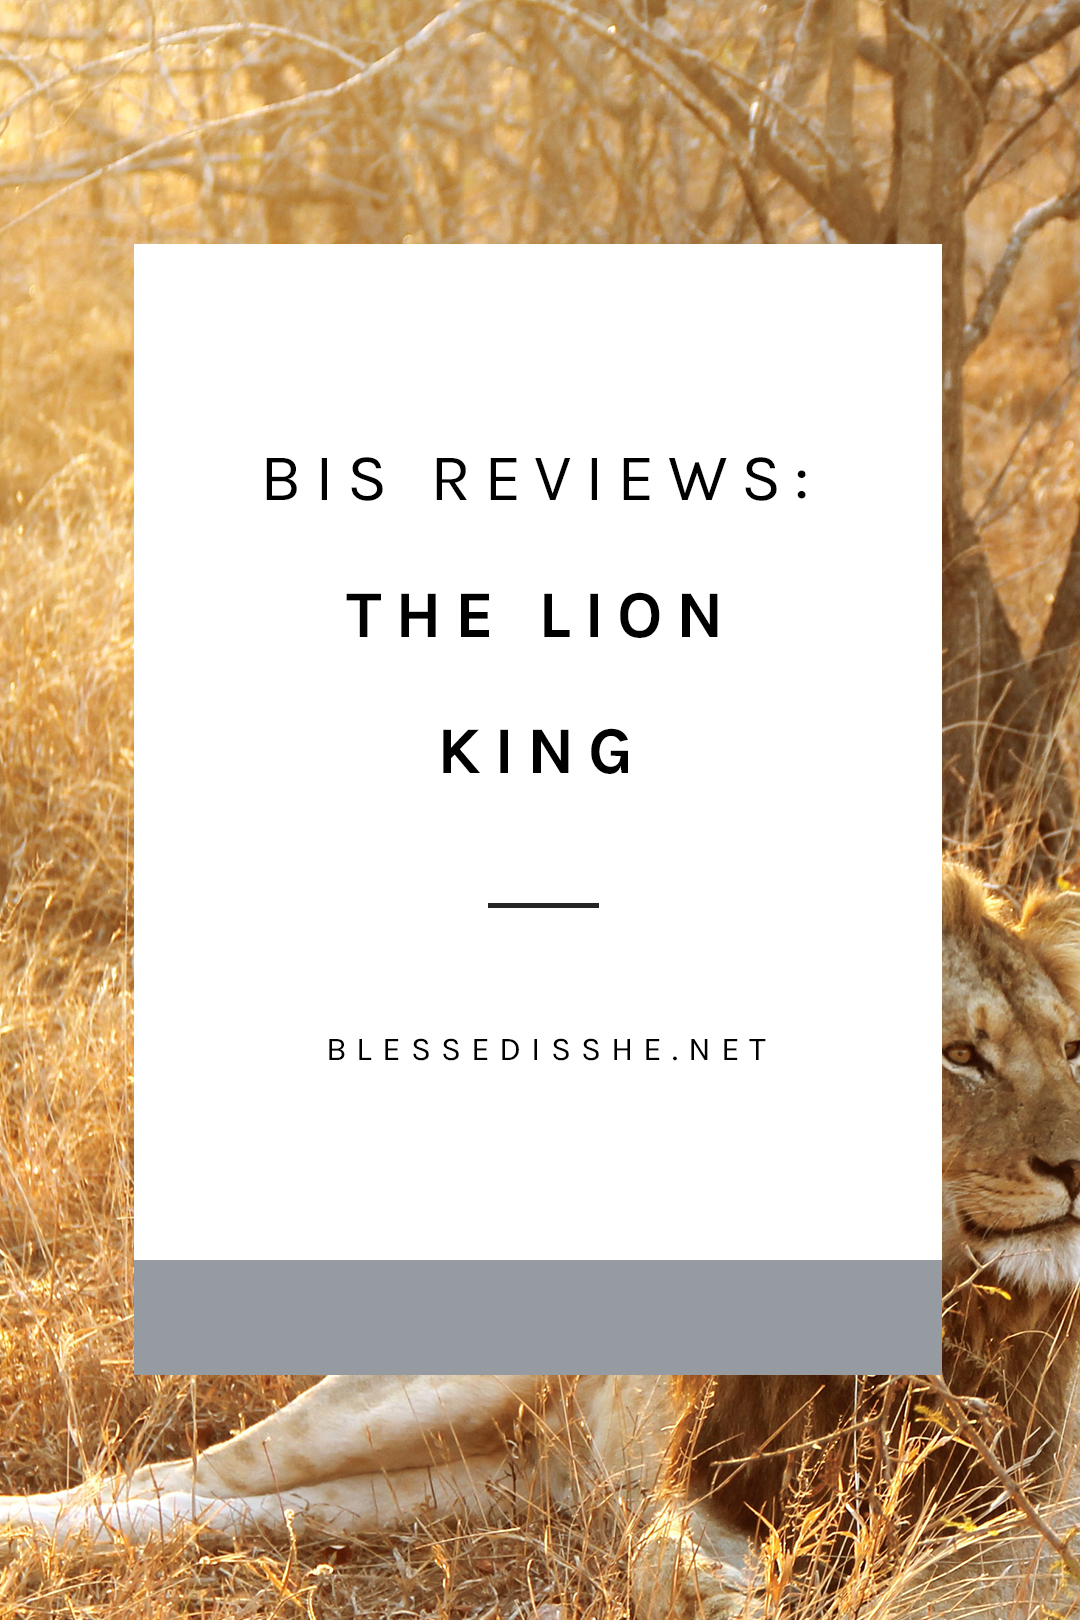 the lion king movie christian perspective